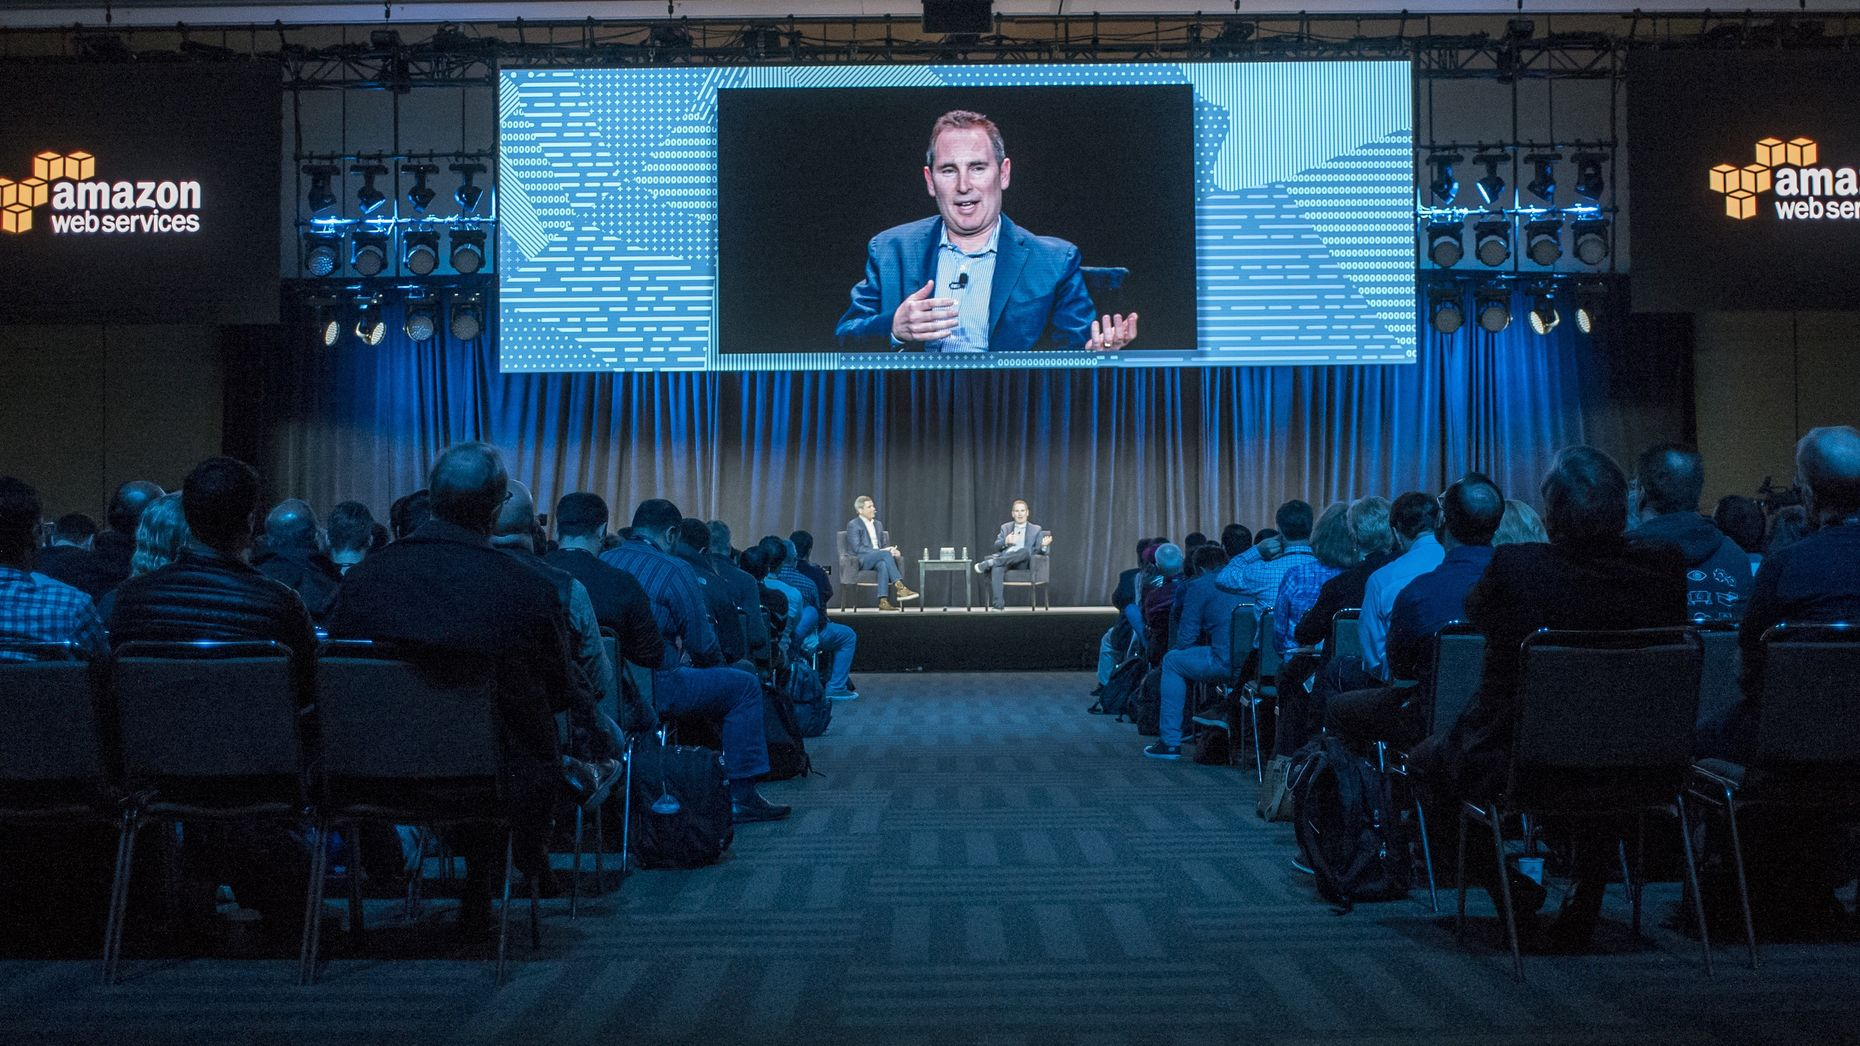 AWS CEO Andy Jassy at an AWS conference in San Francisco in April. Photo by Bloomberg.